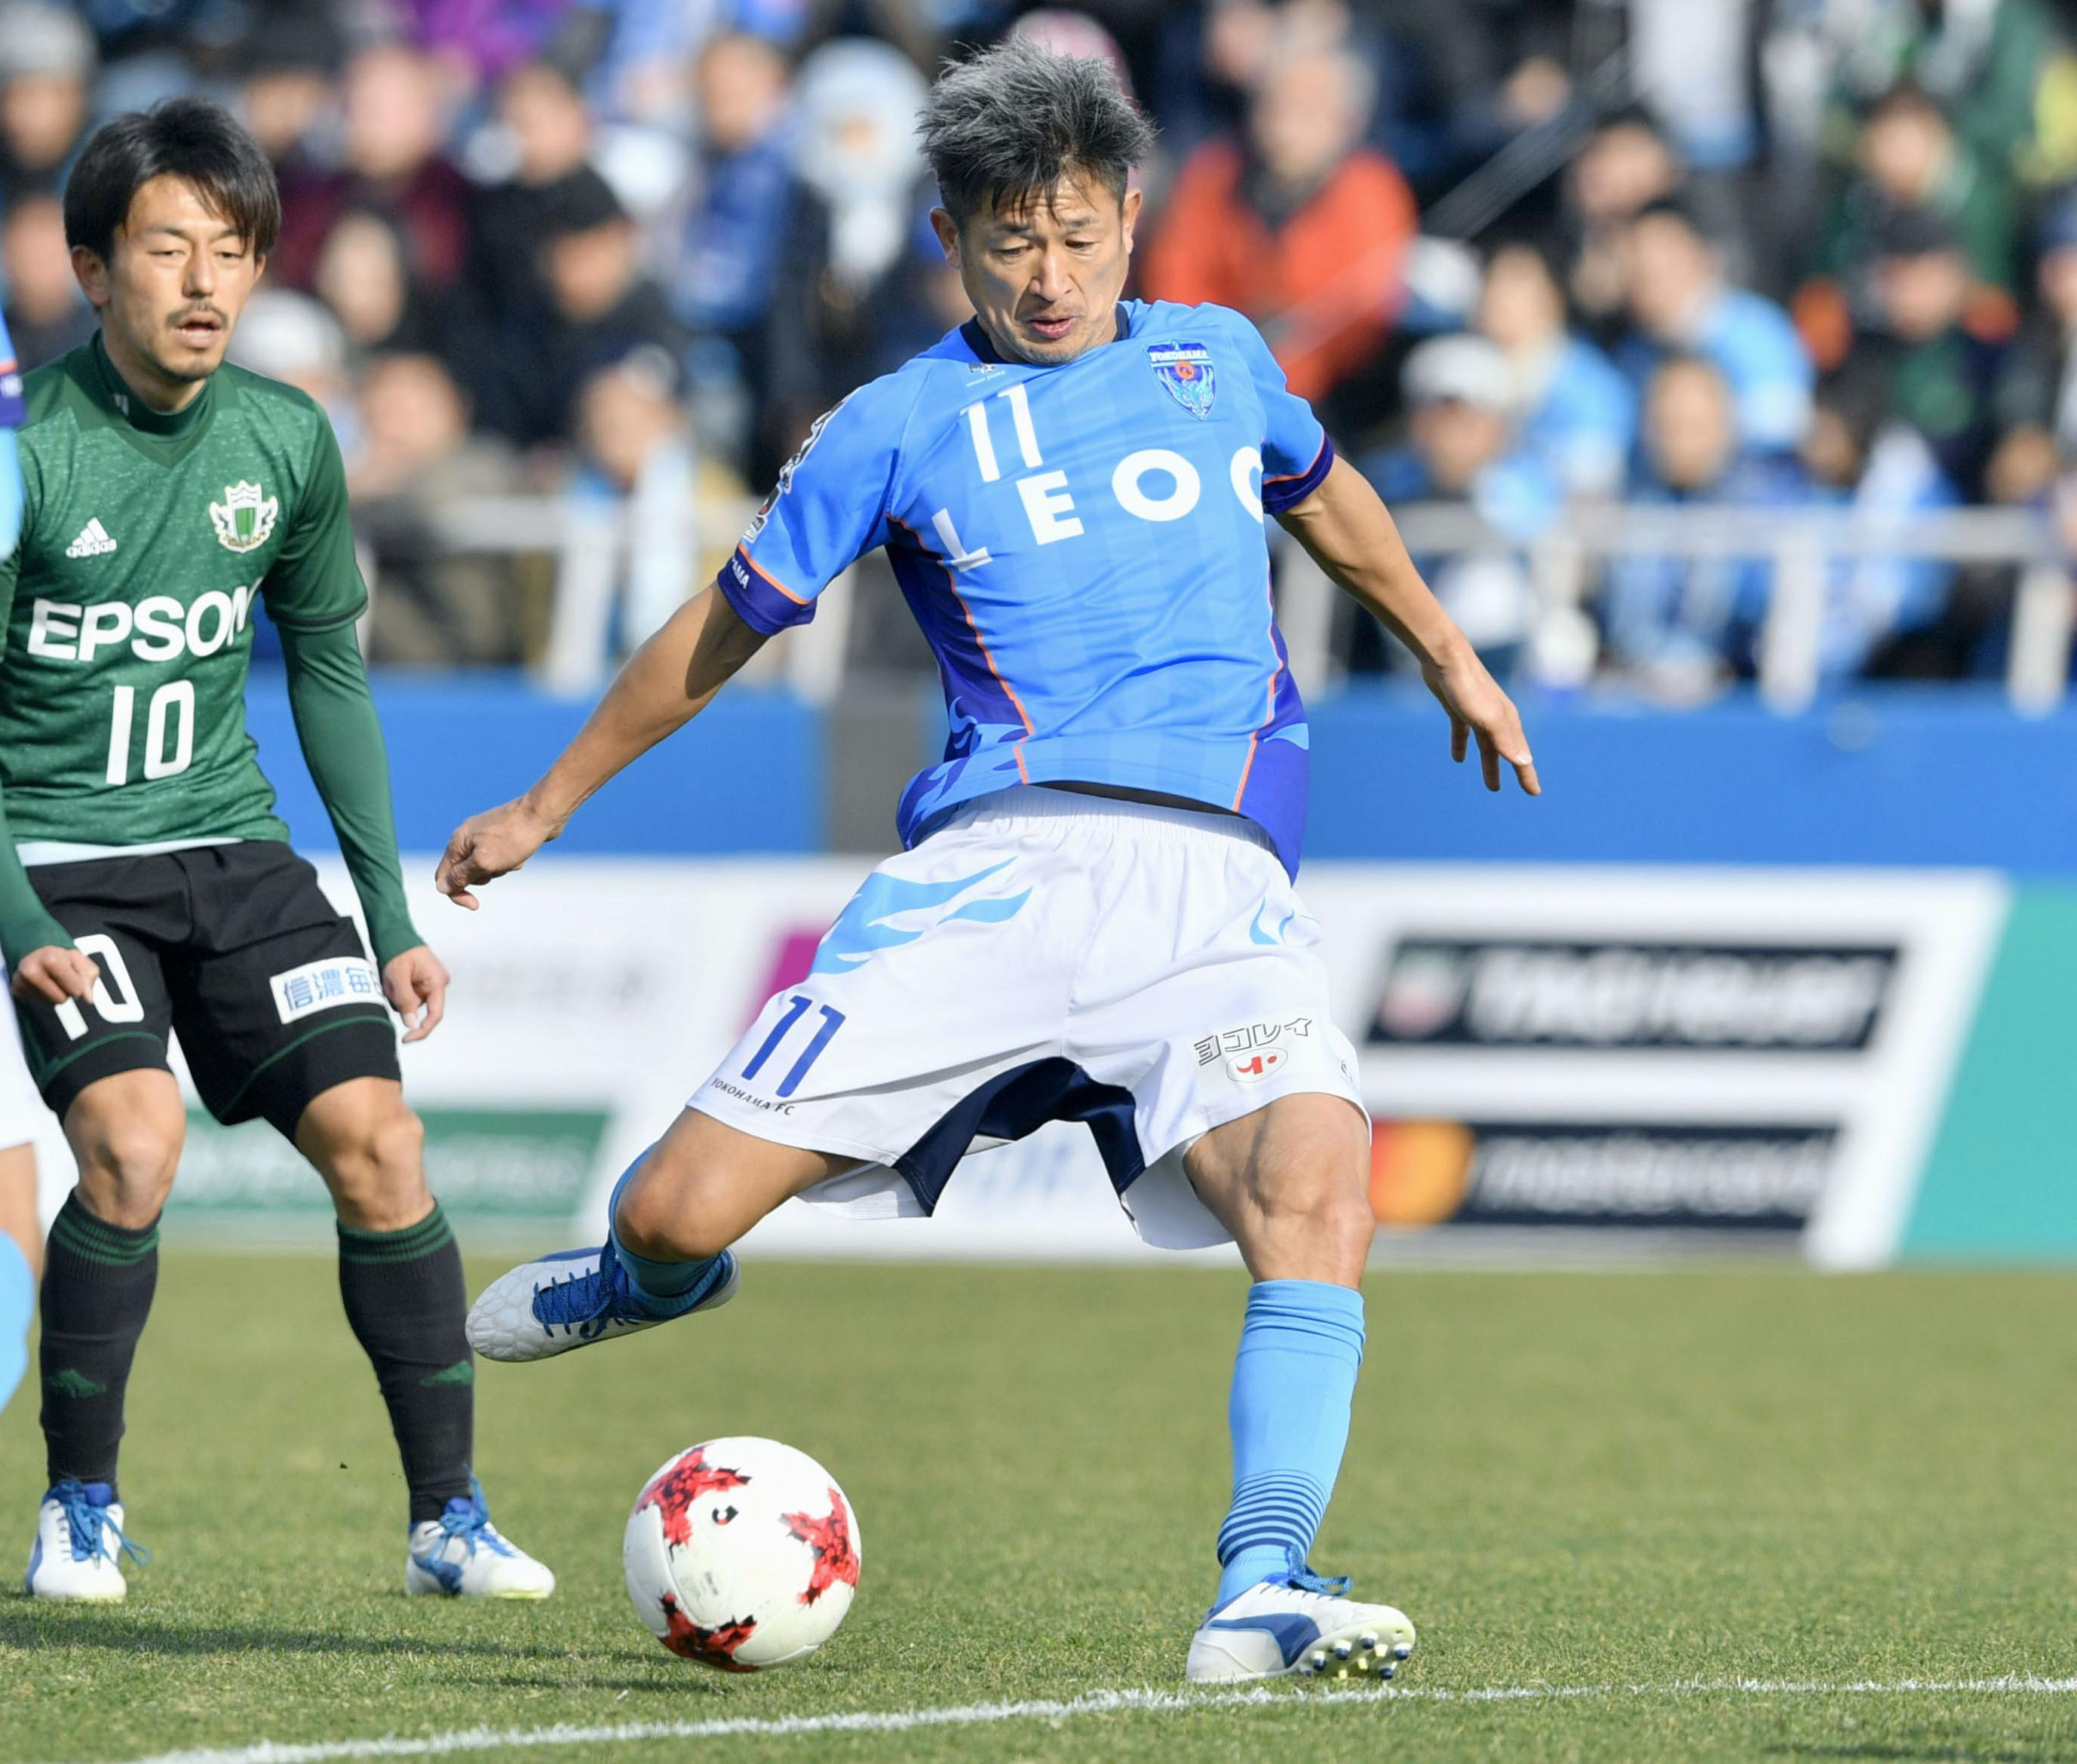 Oldest pro footballer ever Kazuyoshi Miura signs new one-year deal… aged 51